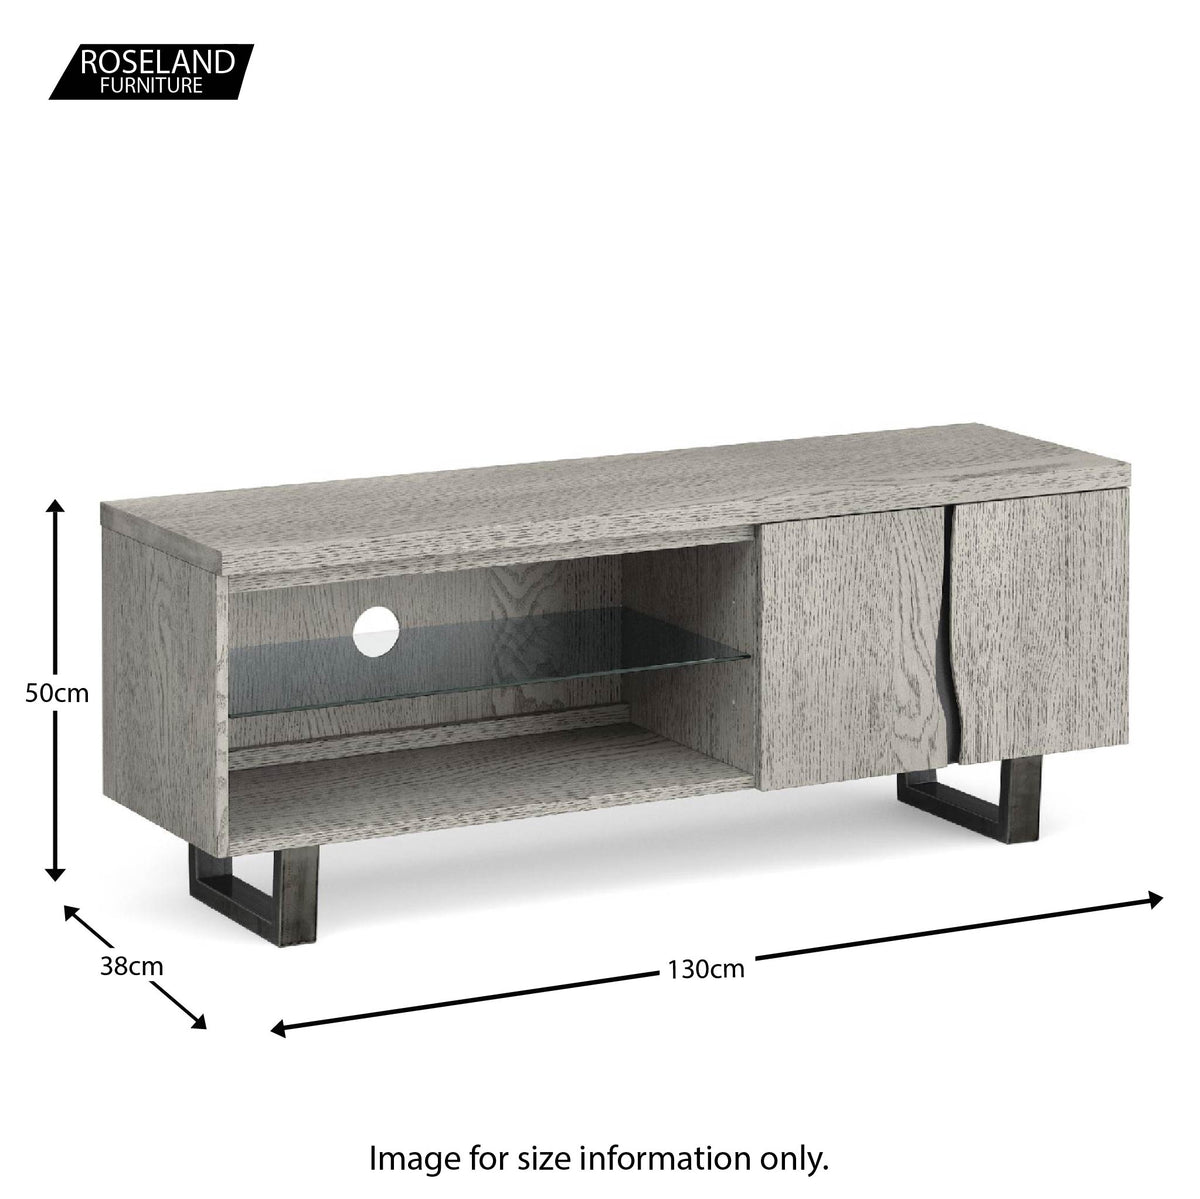 Soho Large 130 cm TV Stand with Glass Shelf - size guide